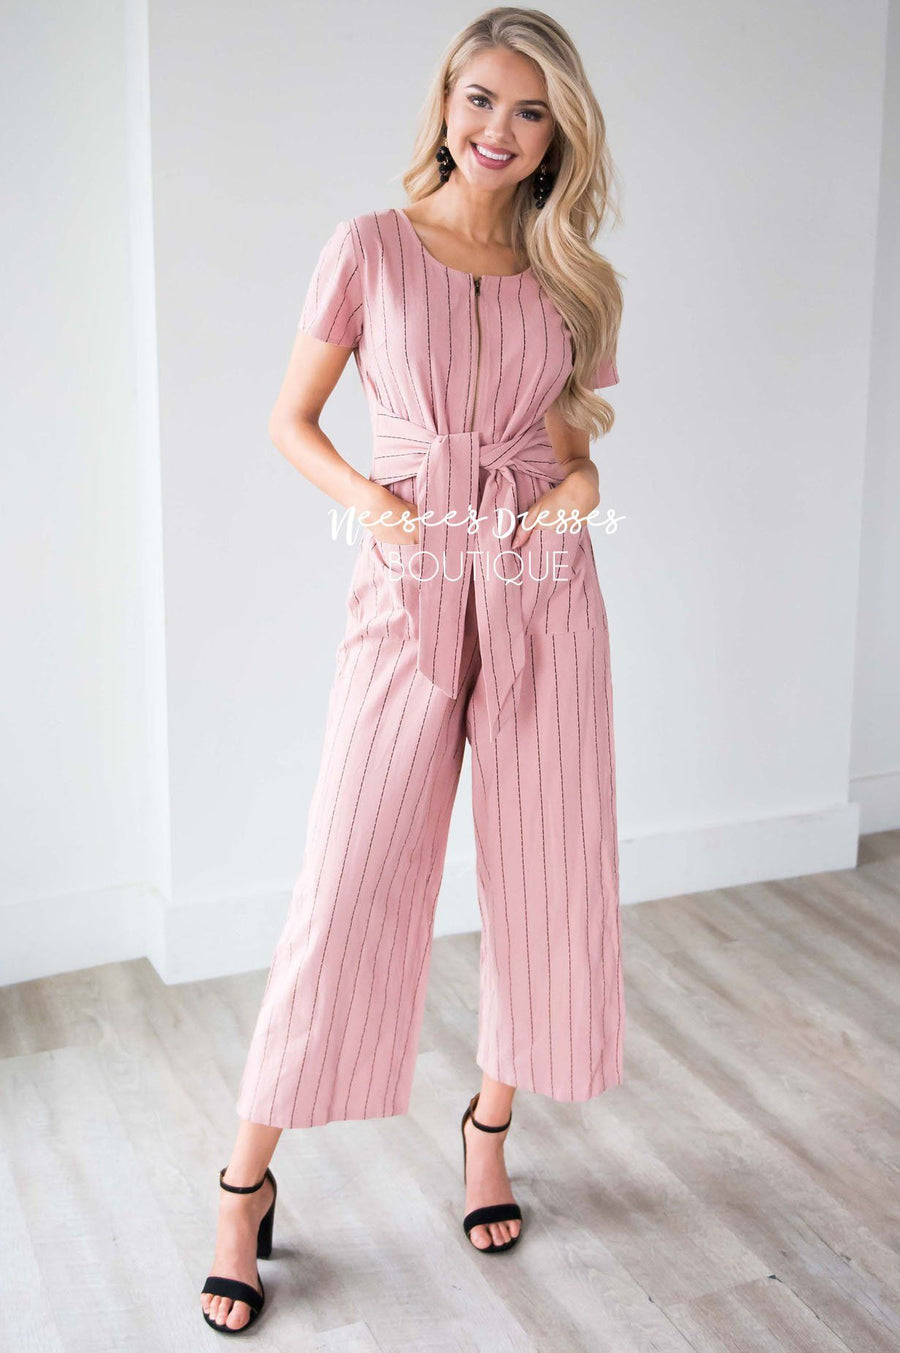 The Sascha Striped Tie Front Jumpsuit